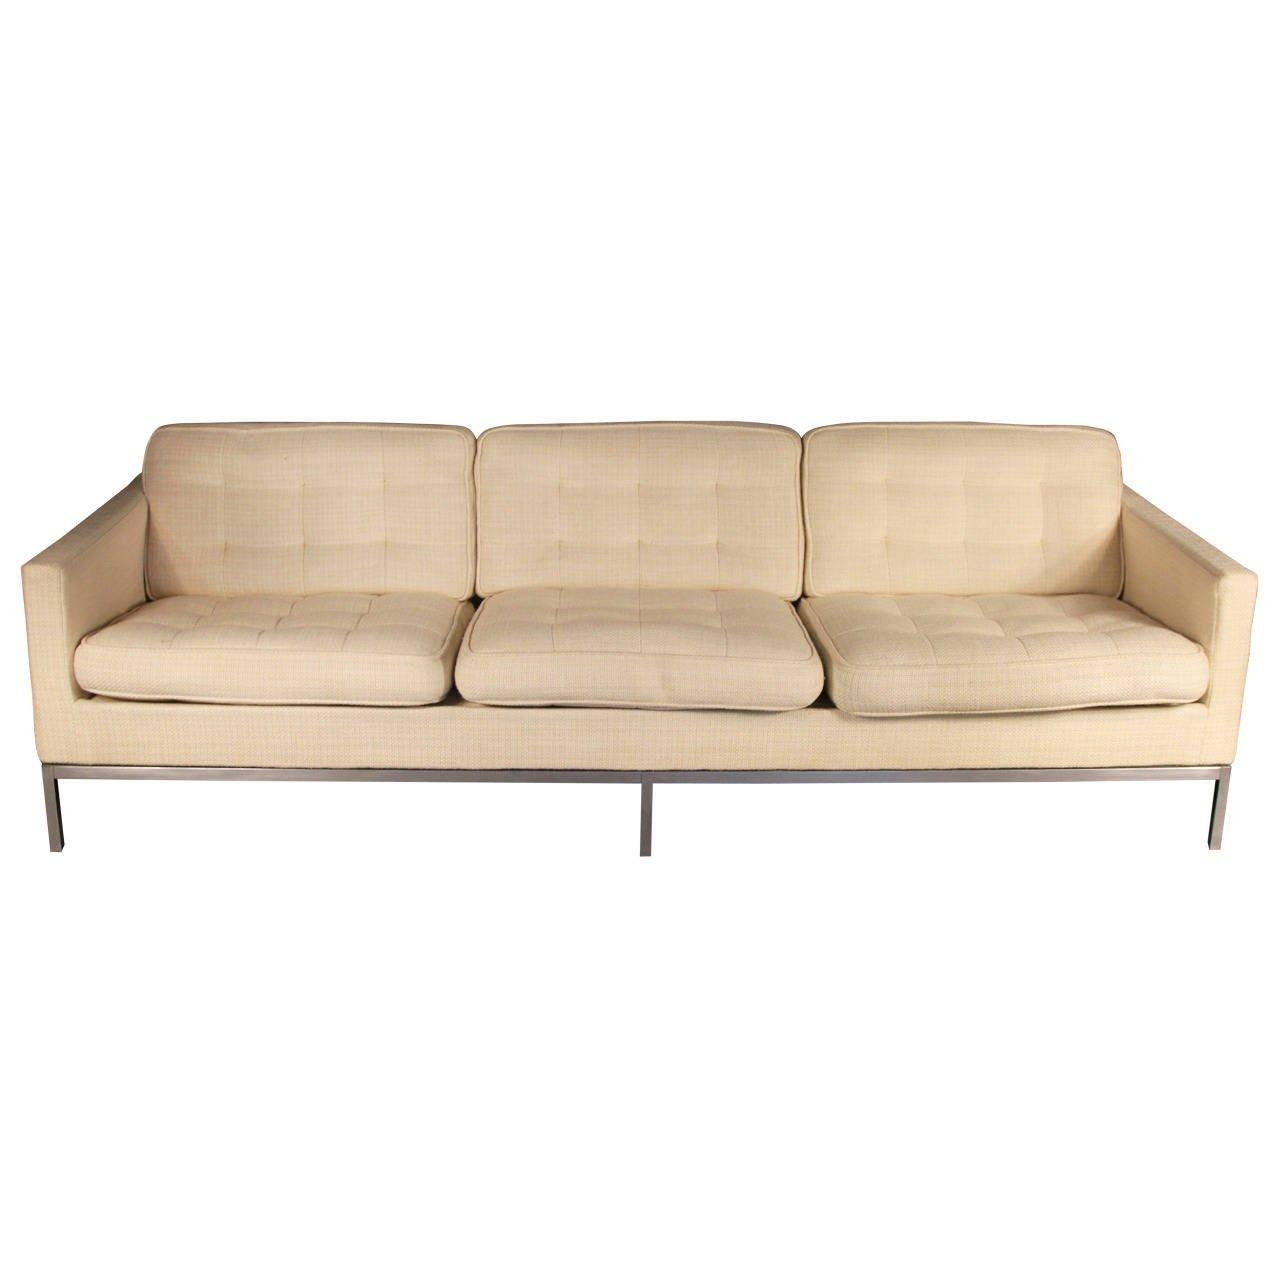 best florence knoll sofa reproduction the bed to buy 20 ideas sofas |